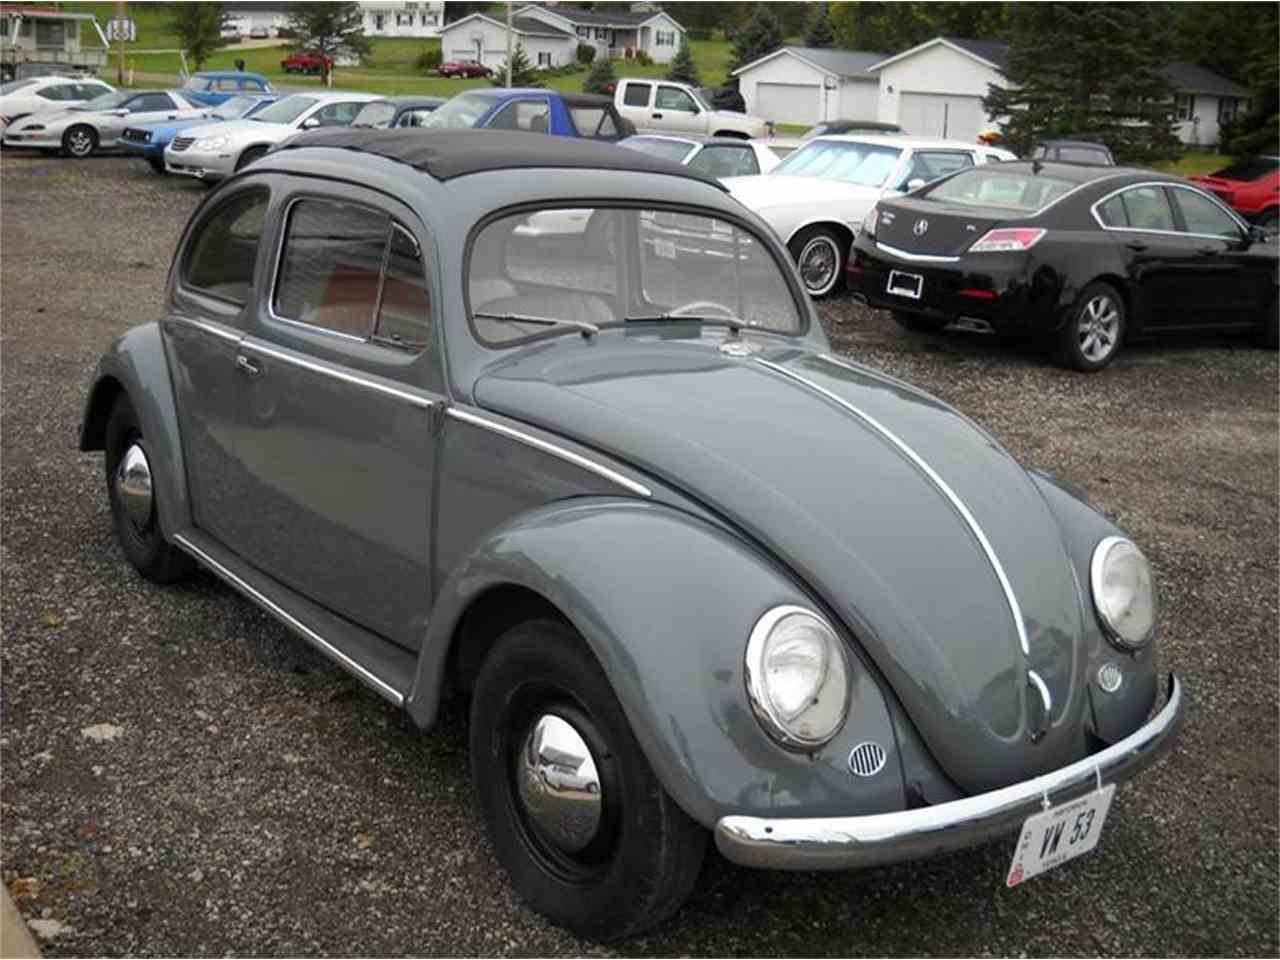 1953 Volkswagen Beetle For Sale Classiccars Com Cc 1056068